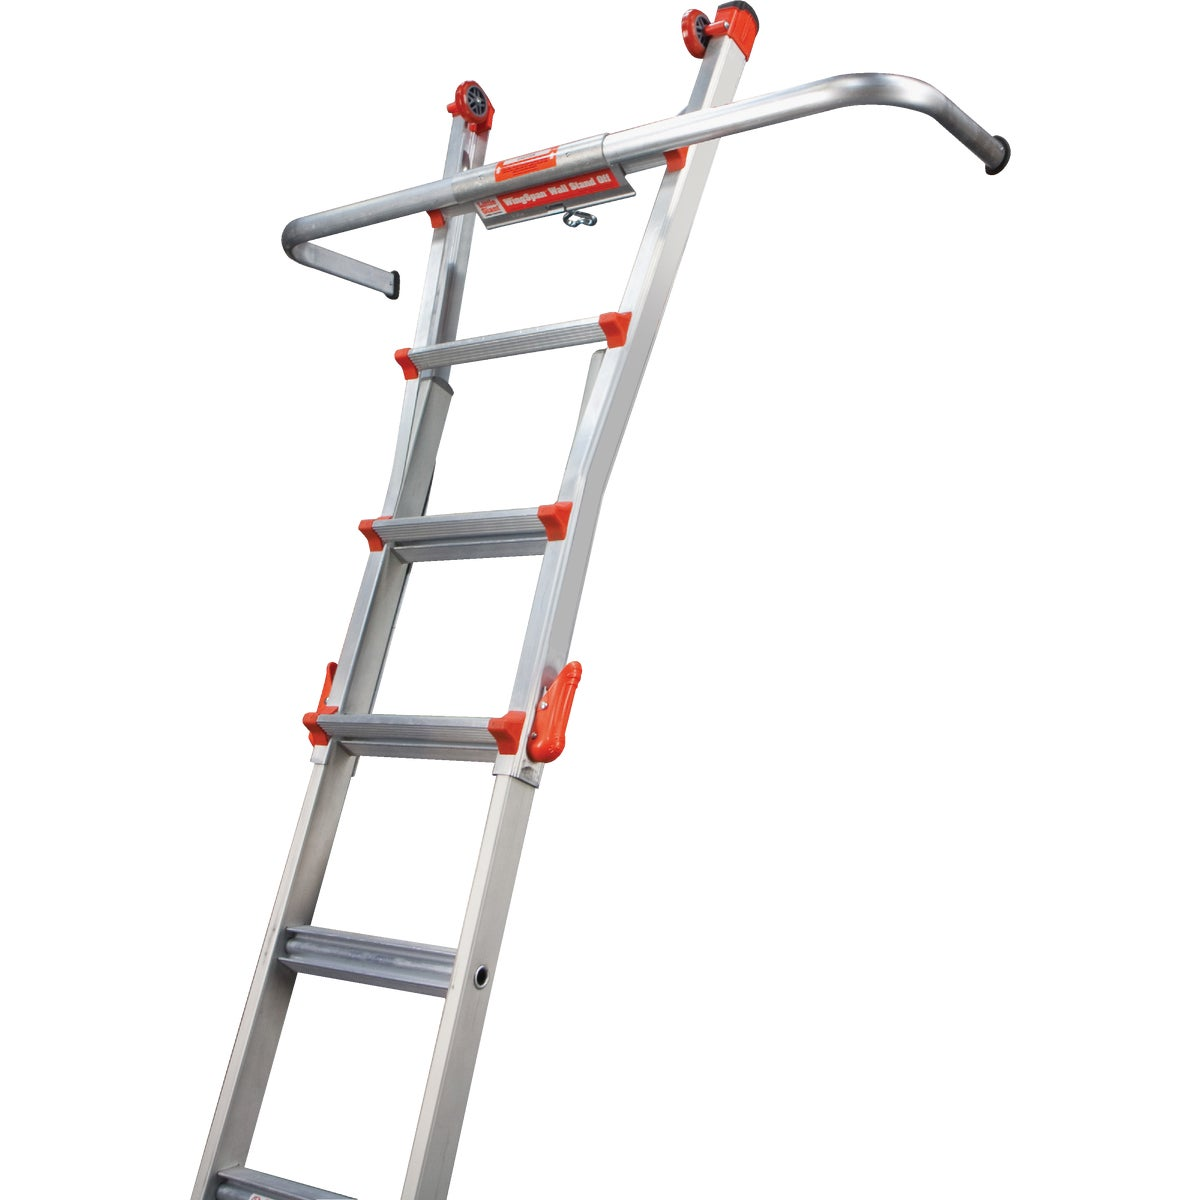 ALUM LADDER STABILIZER - 10111 by Wing Enterprises Inc